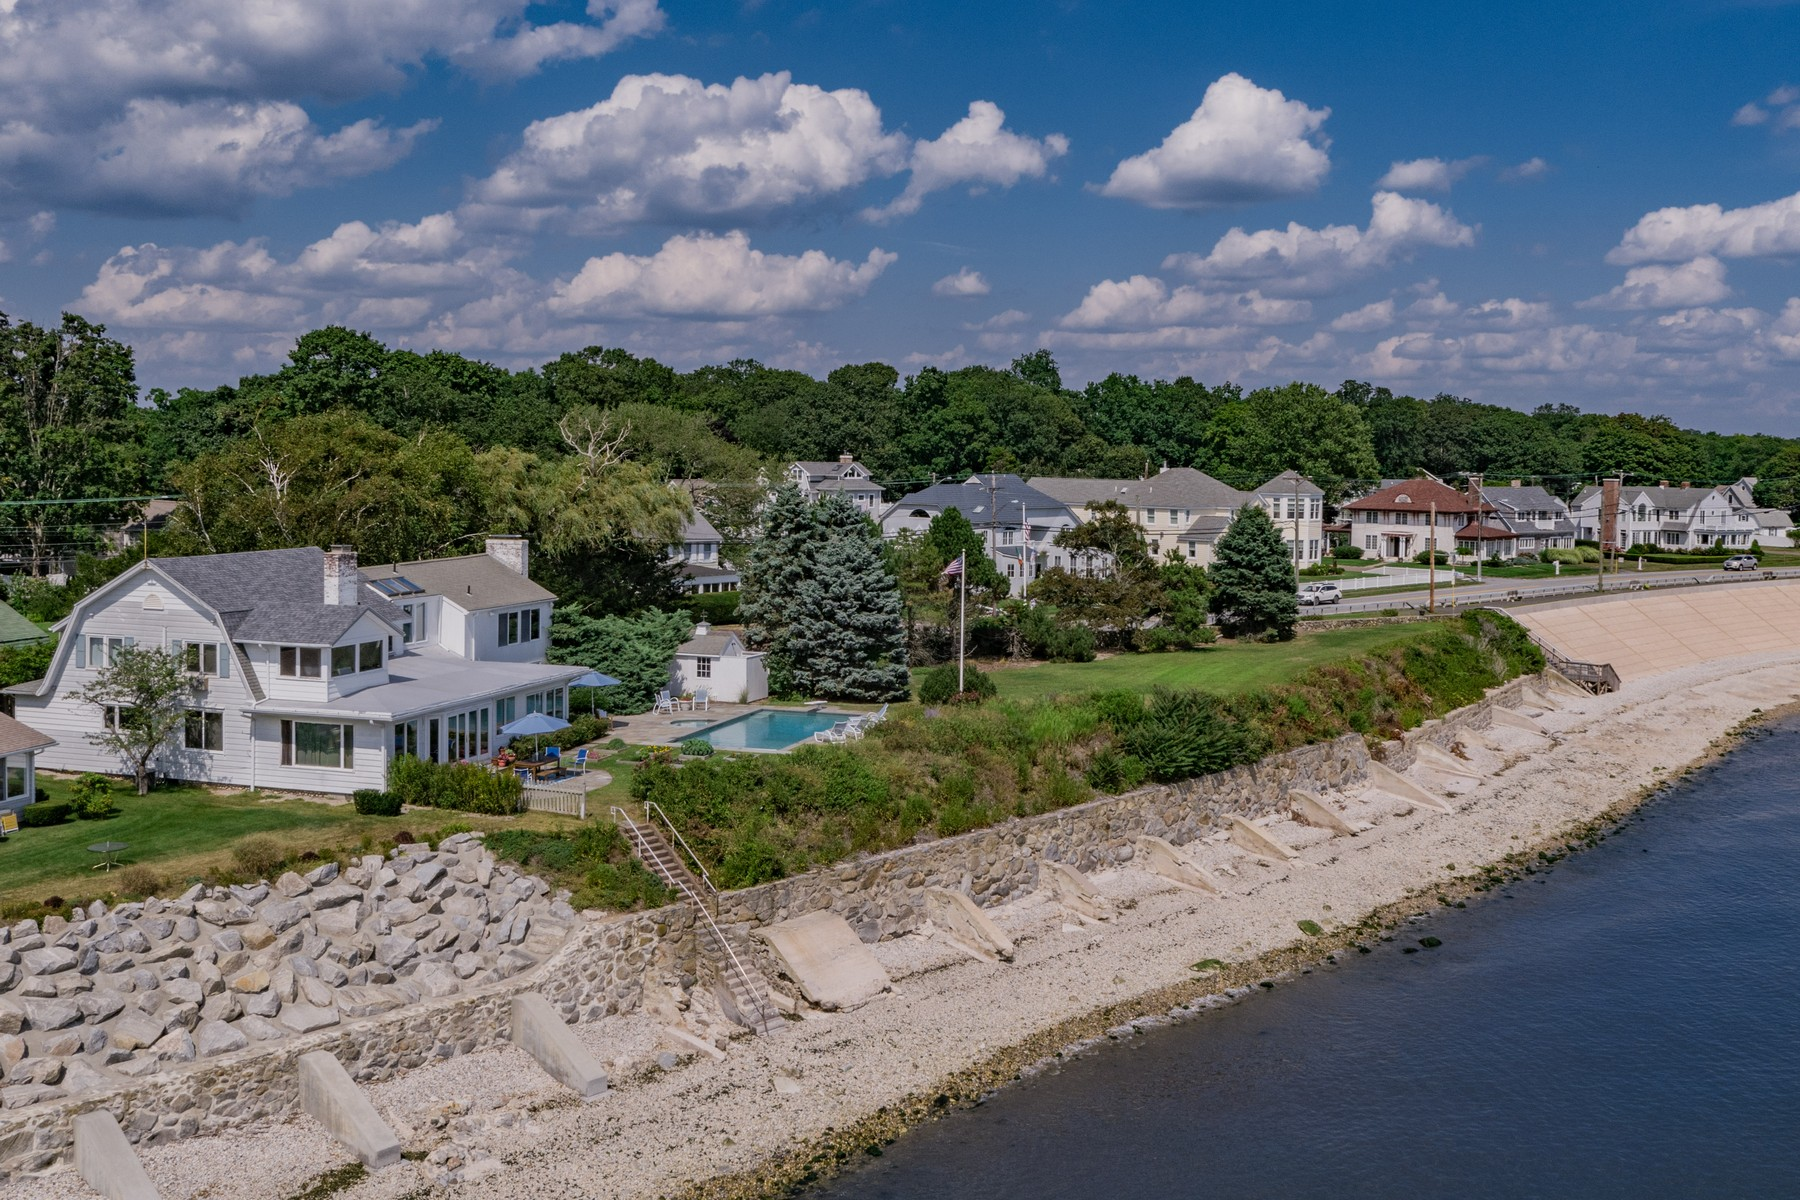 Vivienda unifamiliar por un Venta en Water Frontage of 335 Feet! Rare Opportunity! 363 Maple Avenue, Old Saybrook, Connecticut, 06475 Estados Unidos